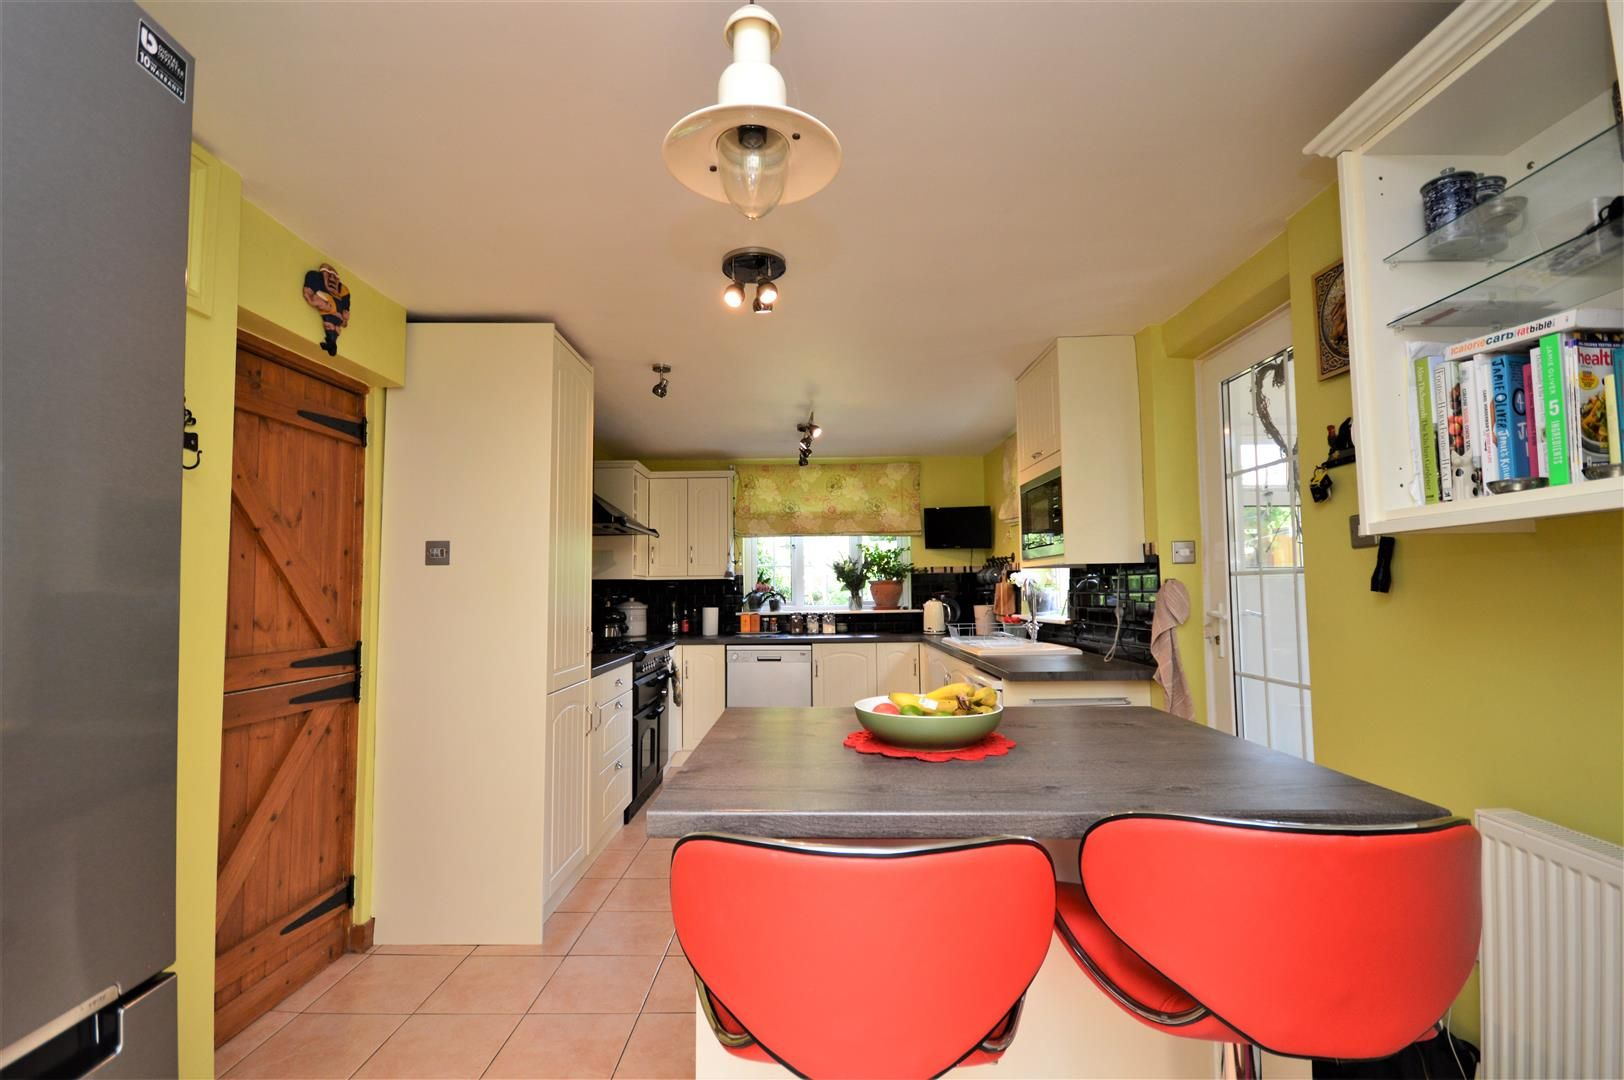 3 bed semi-detached for sale in Stretton Sugwas 6